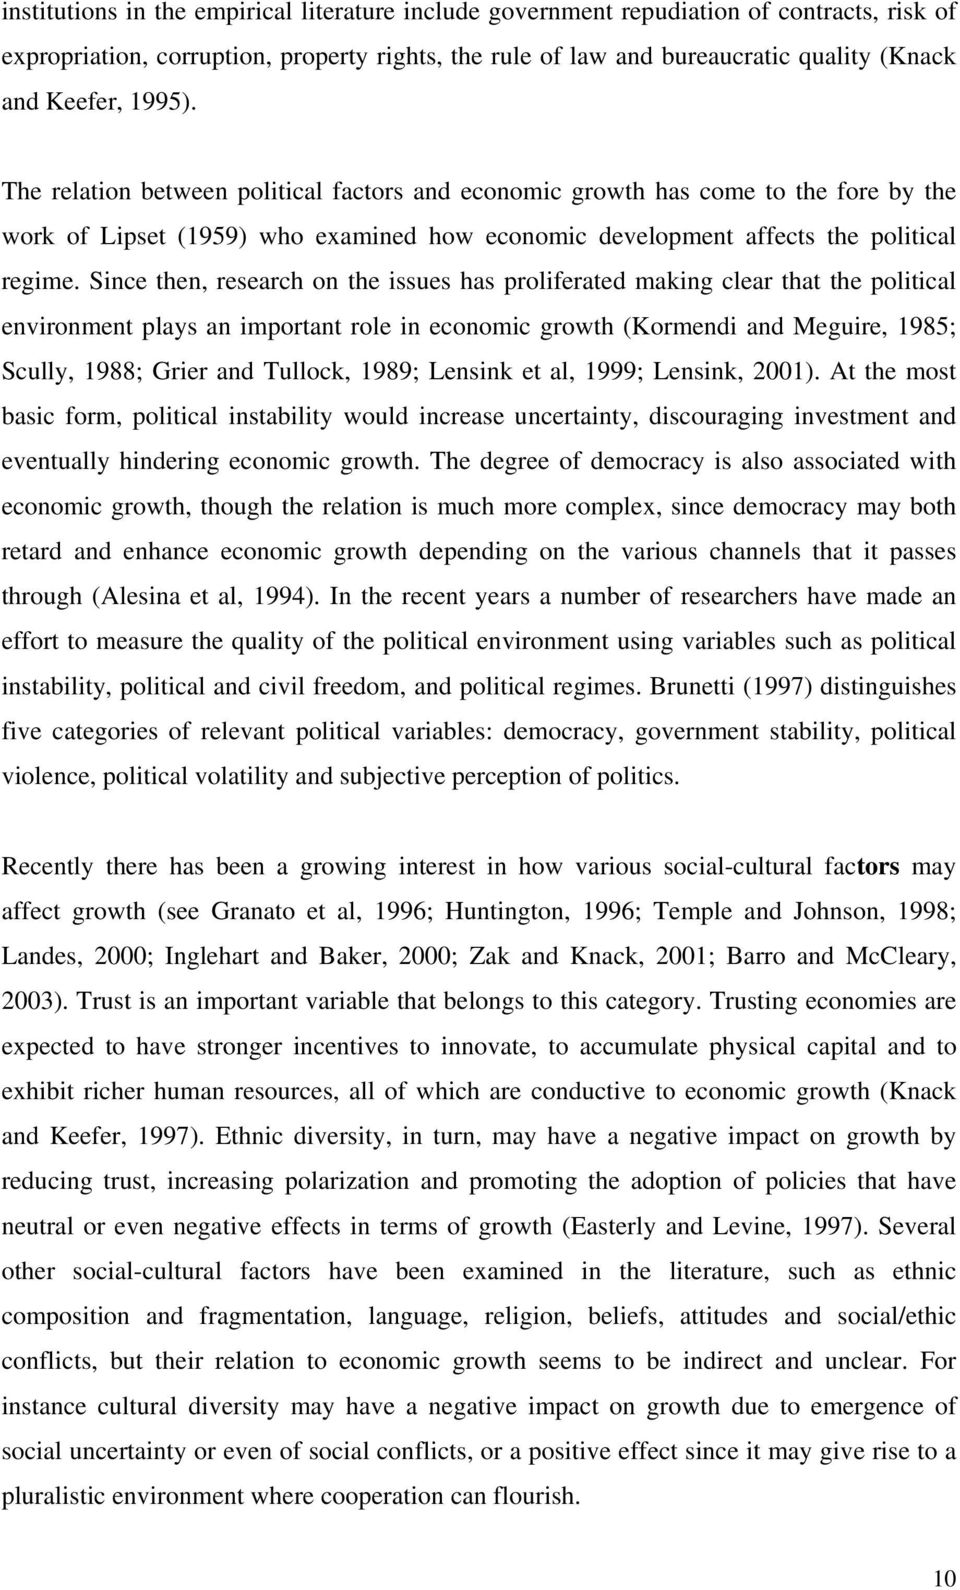 Since then, research on the issues has proliferated making clear that the political environment plays an important role in economic growth (Kormendi and Meguire, 1985; Scully, 1988; Grier and